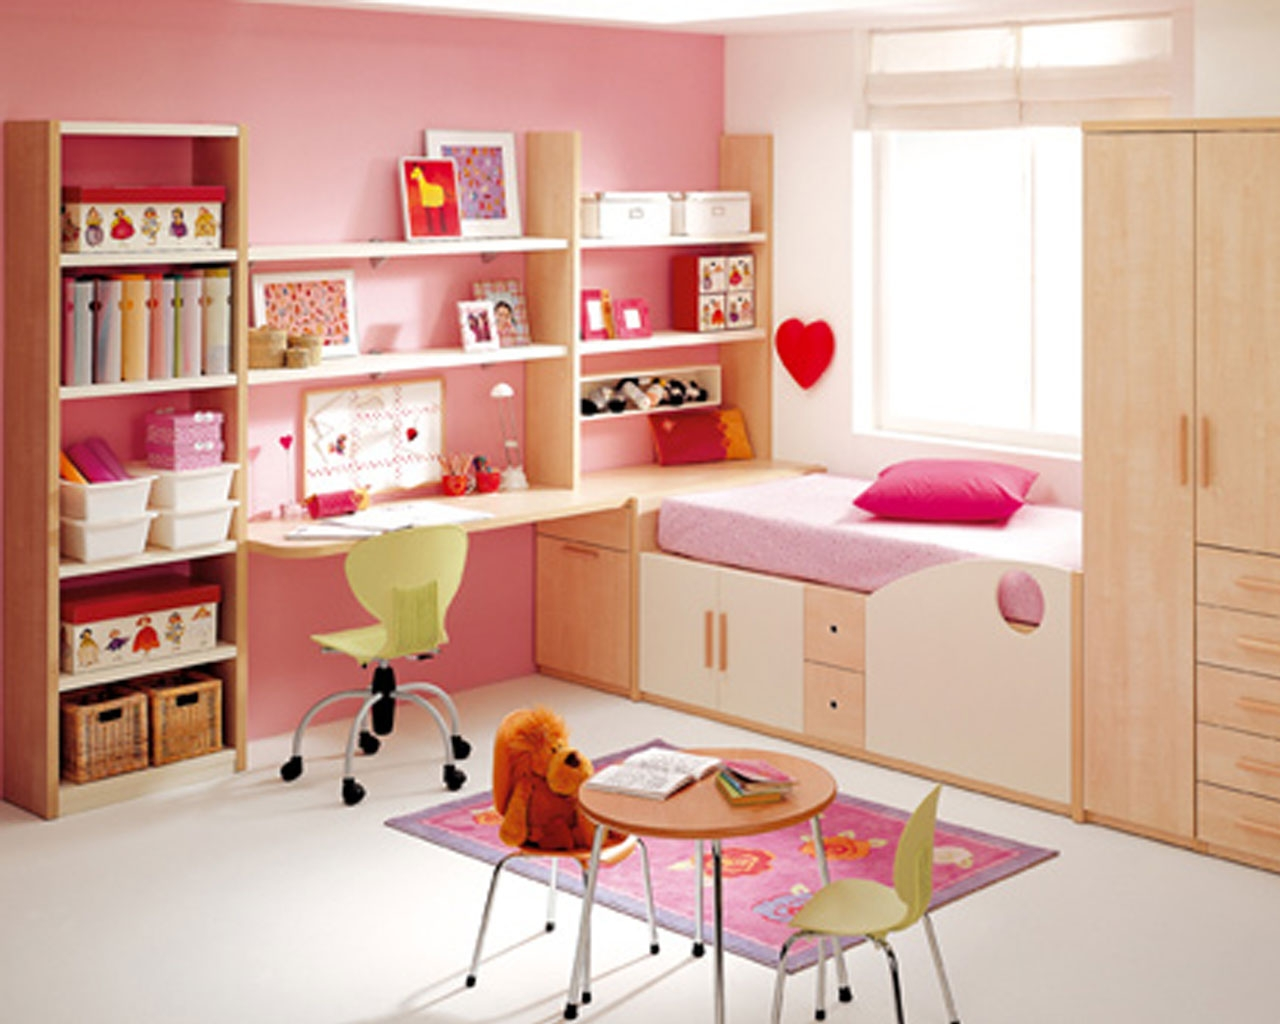 Pink Kids Home Decor With Cute Impression (Image 5 of 10)